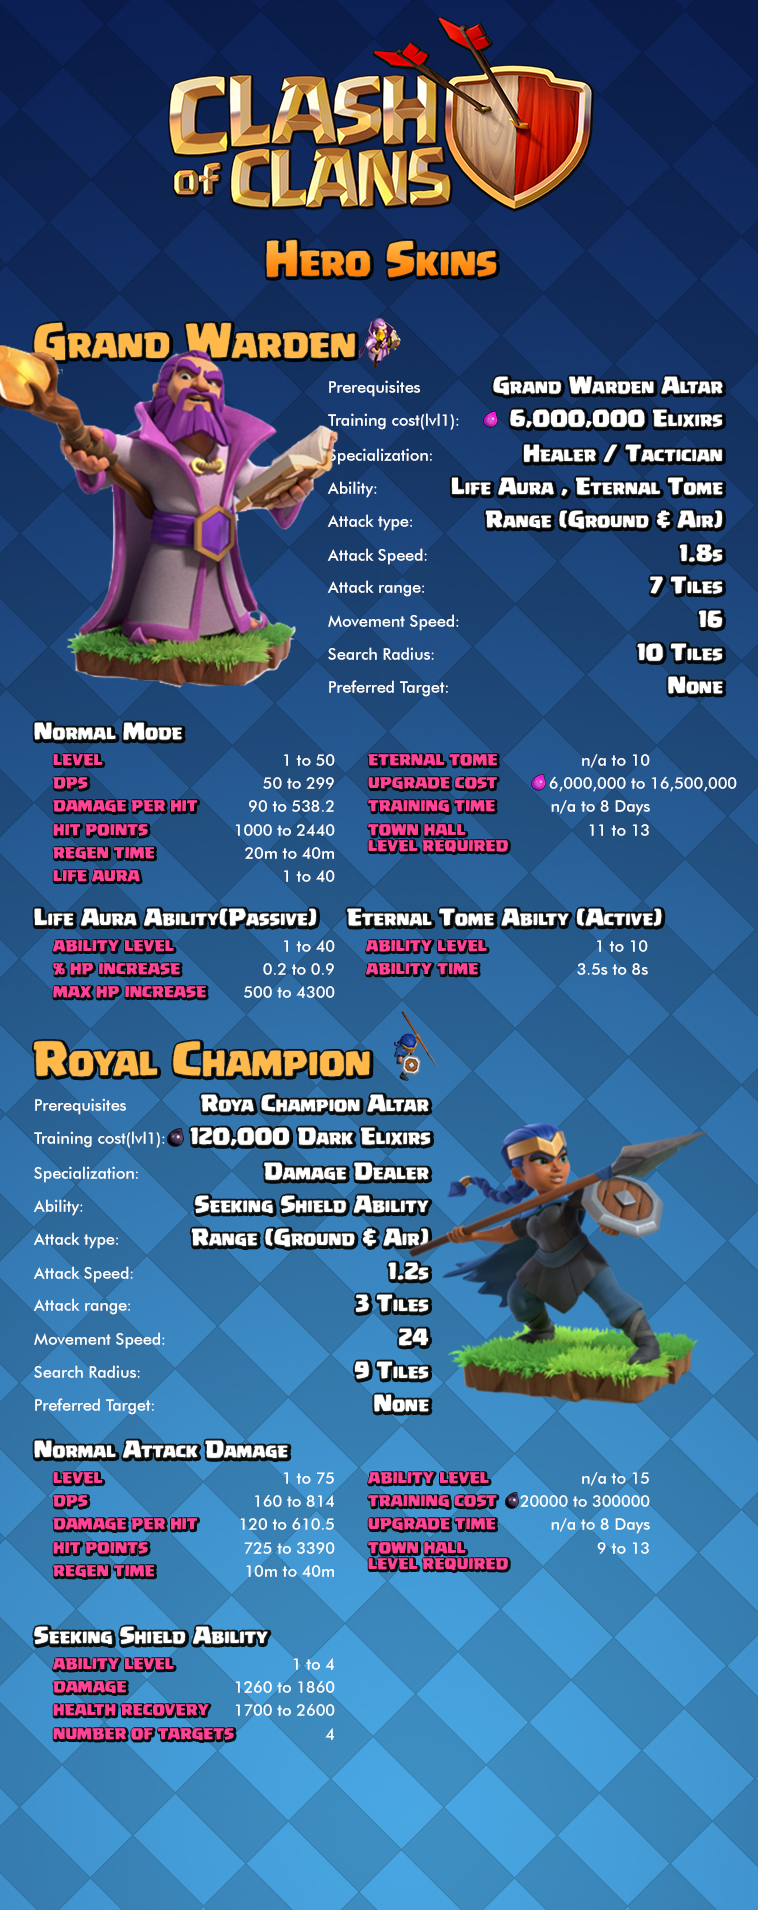 Grand Warden and Royal Champion